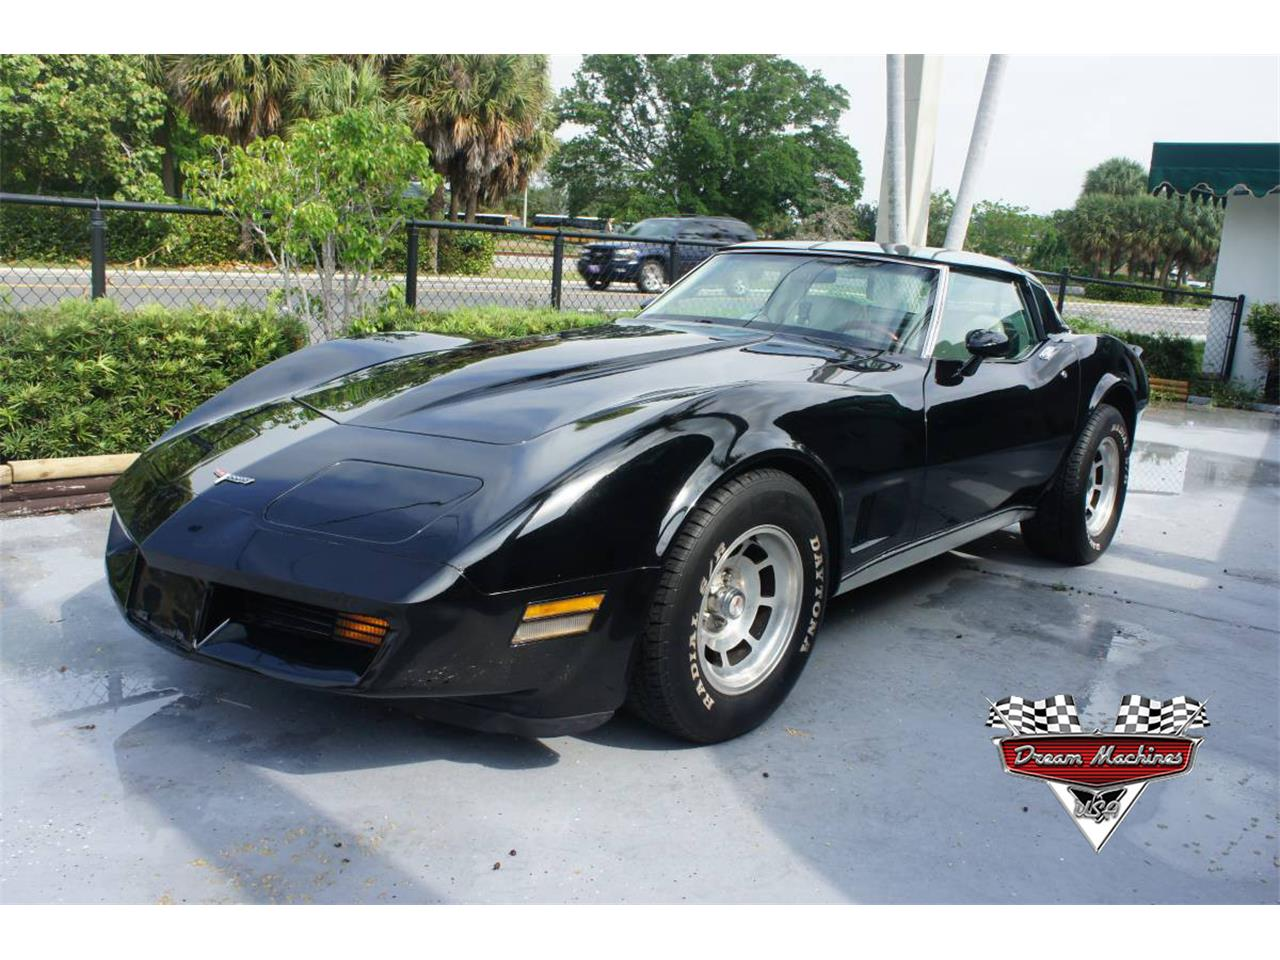 1980 Chevrolet Corvette (CC-1360298) for sale in Lantana, Florida